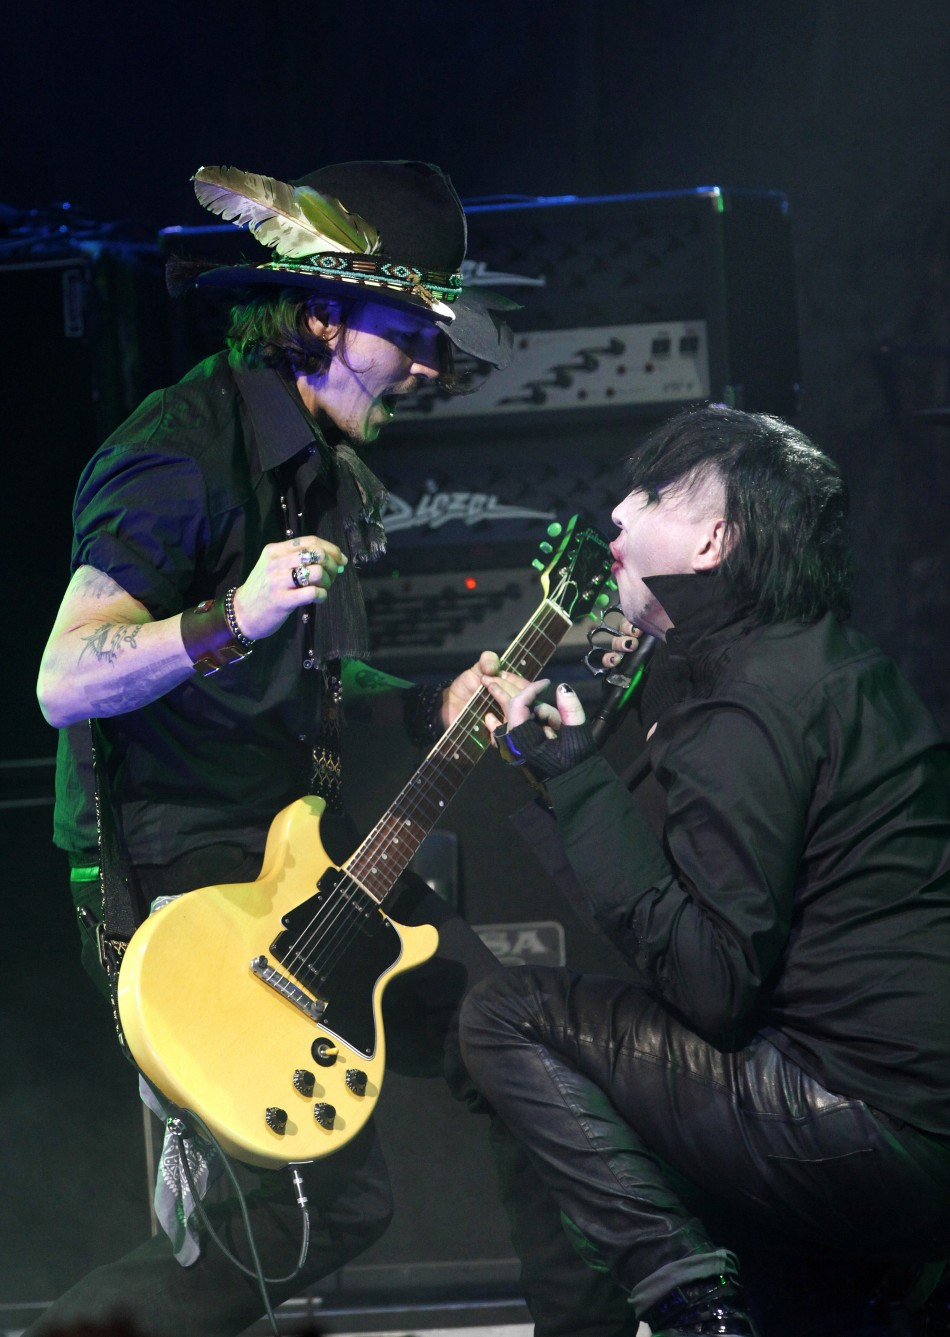 Johnny Depp L performs with musician Marilyn Manson at the 4th annual Golden Gods awards at Nokia theatre in Los Angeles, California April 11, 2012.